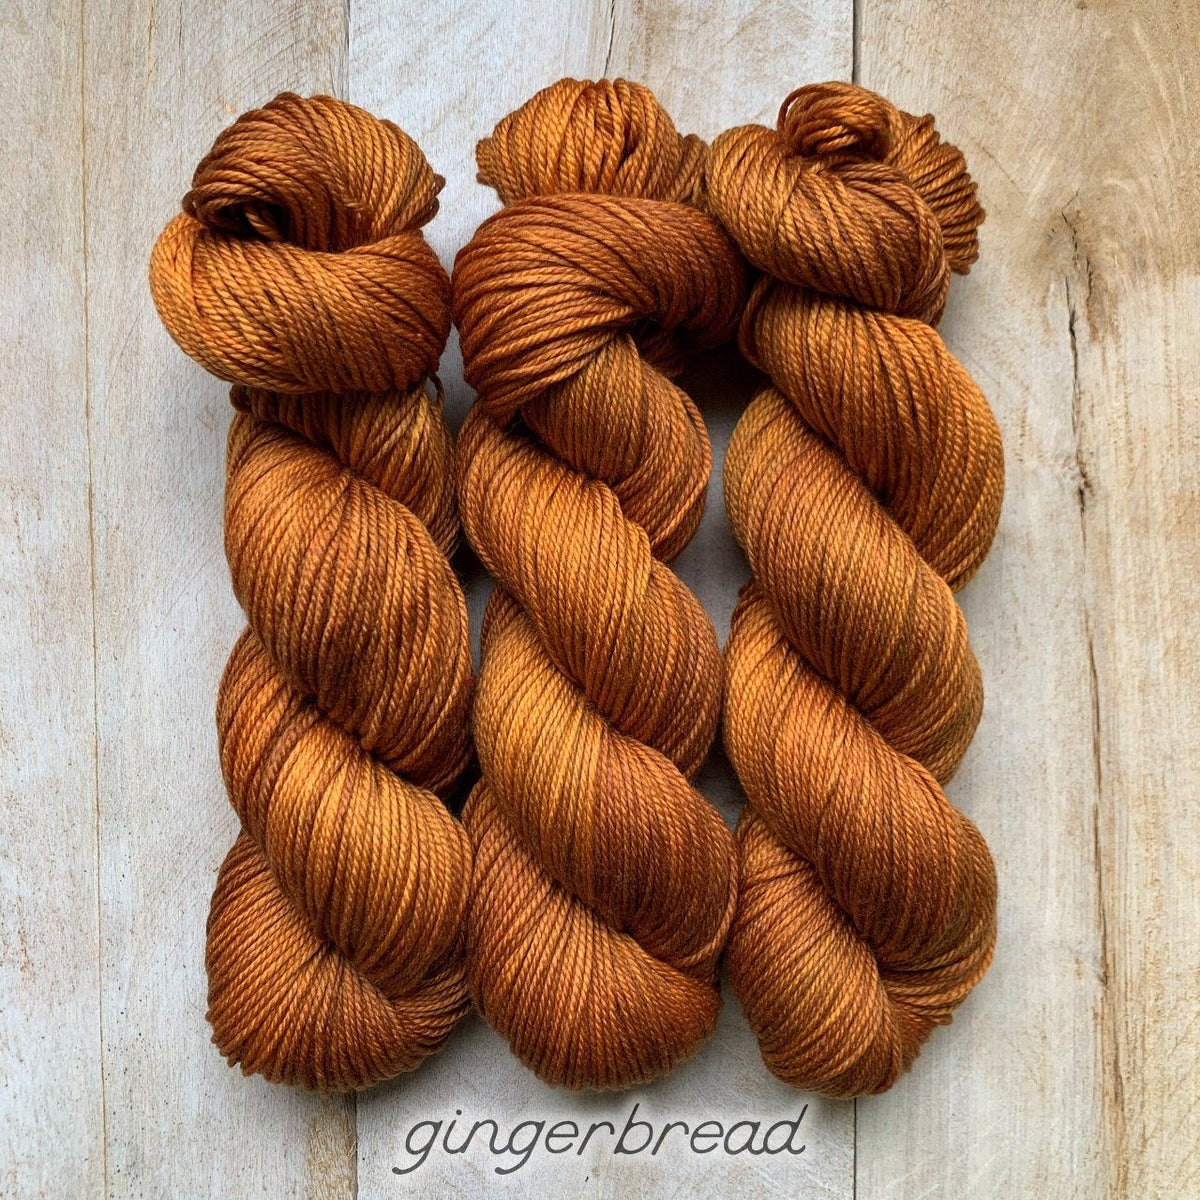 GINGERBREAD by Louise Robert Design | DK PURE hand-dyed semi-solid yarn